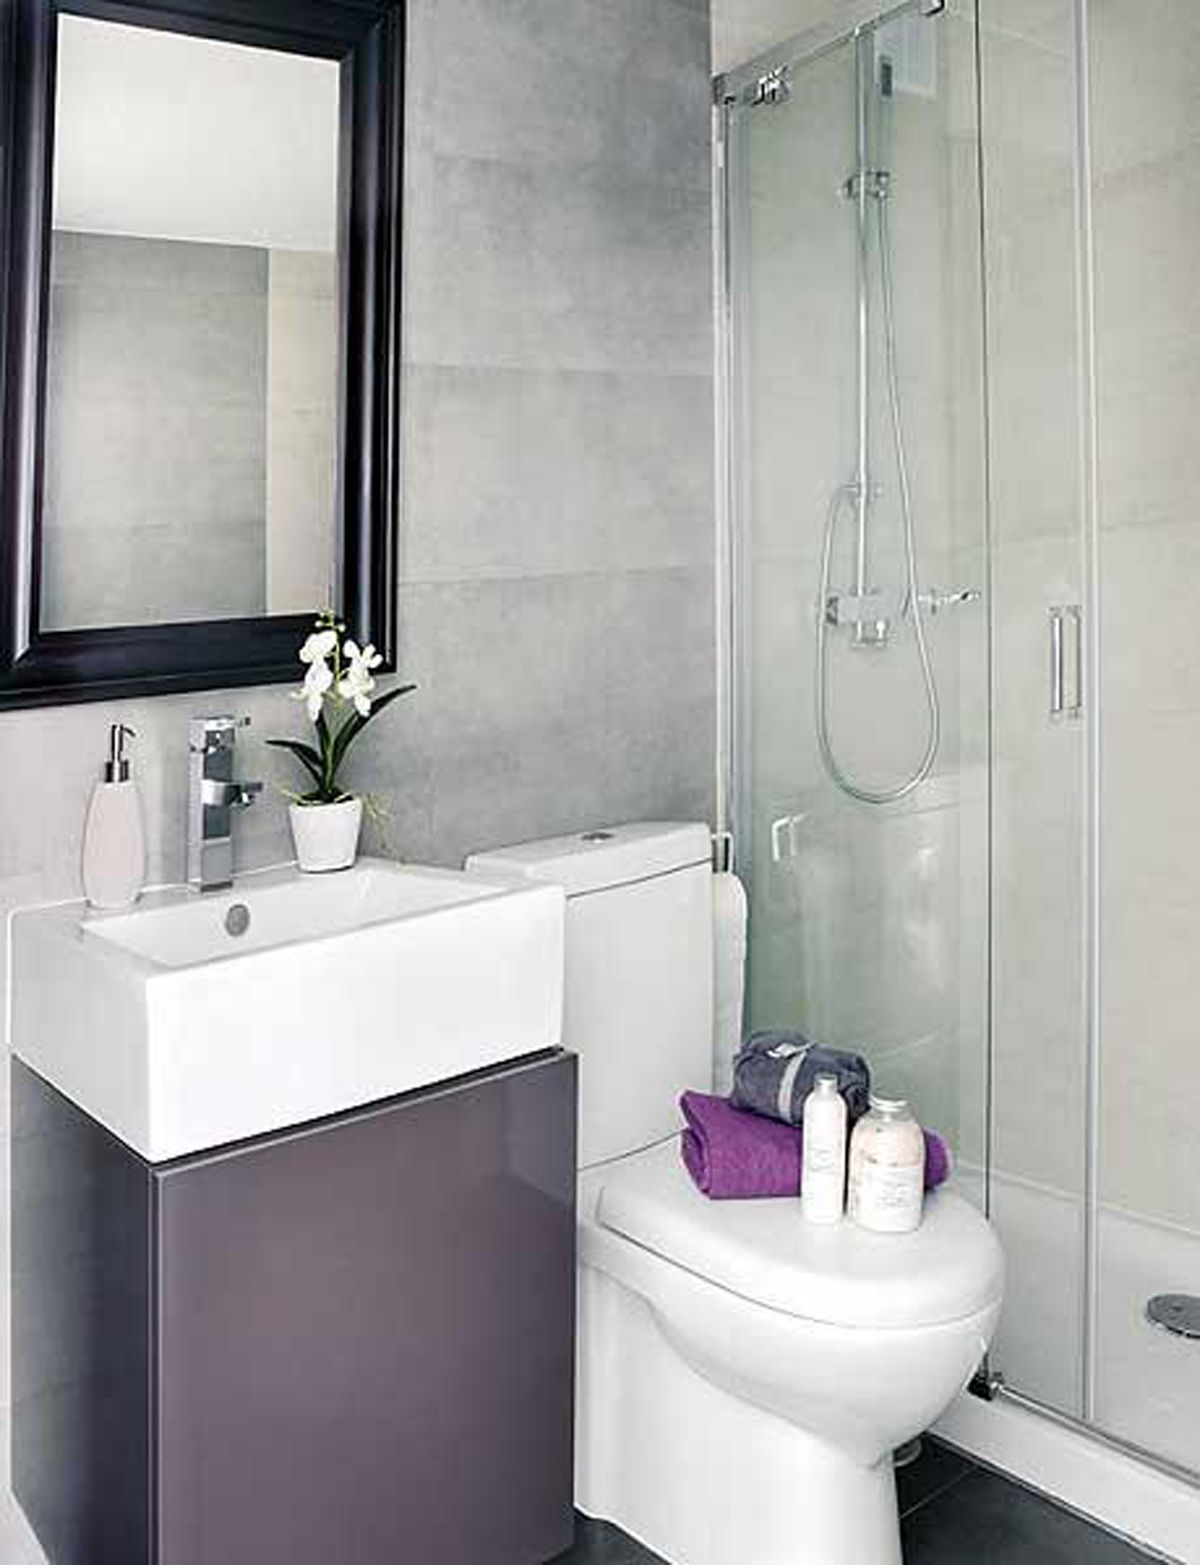 Pics Of Awesome Interior Design of a Small Square Meter Apartment Small Square Meter Apartment With White Purple Bathroom Wall Mirror Wash Basin Storage